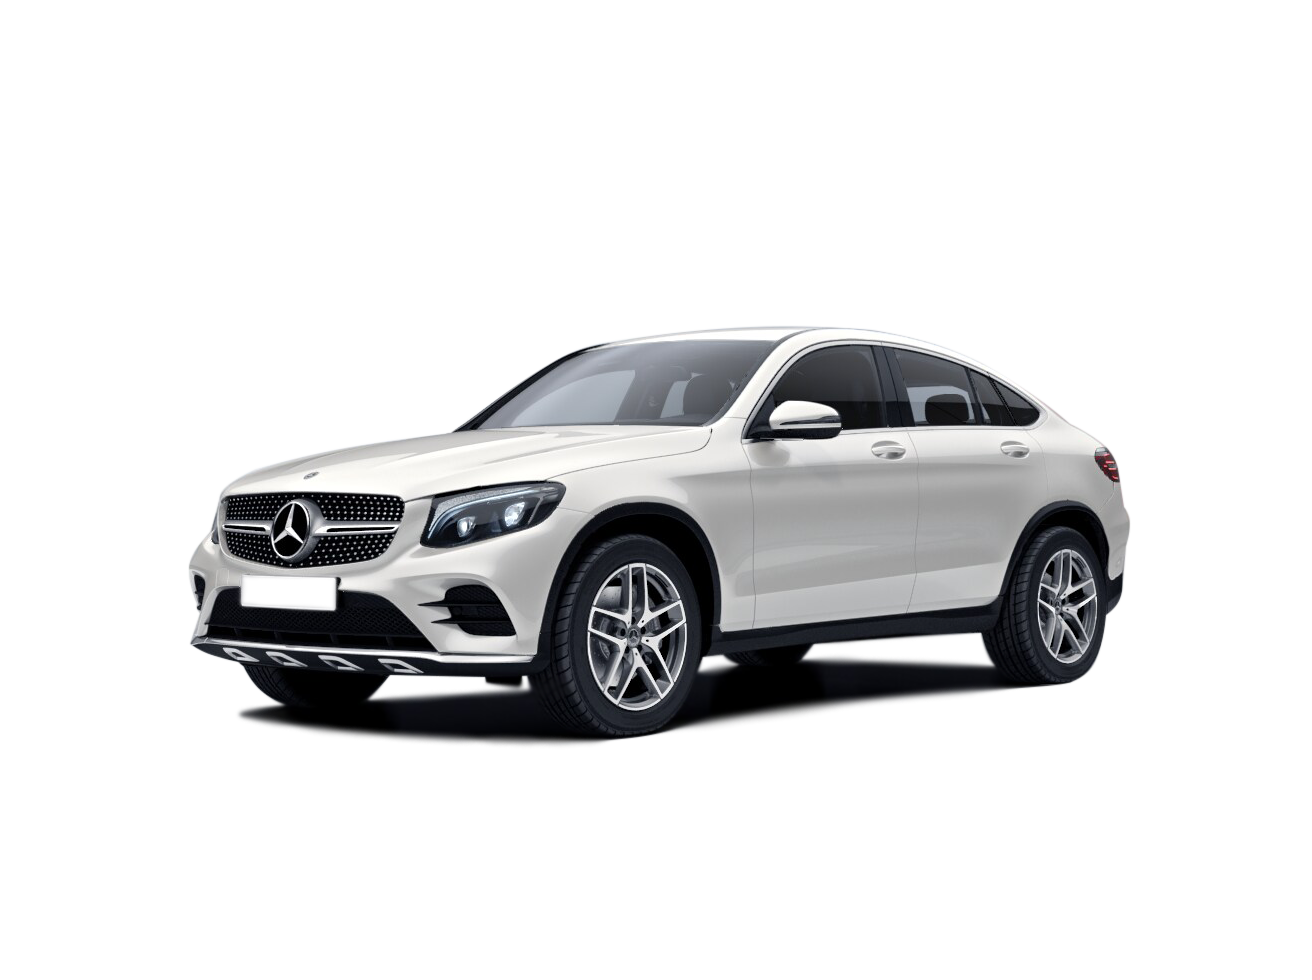 MERCEDES-BENZ - GLC 250 - 2.0 CGI GASOLINA COUPÉ 4MATIC 9G-TRONIC